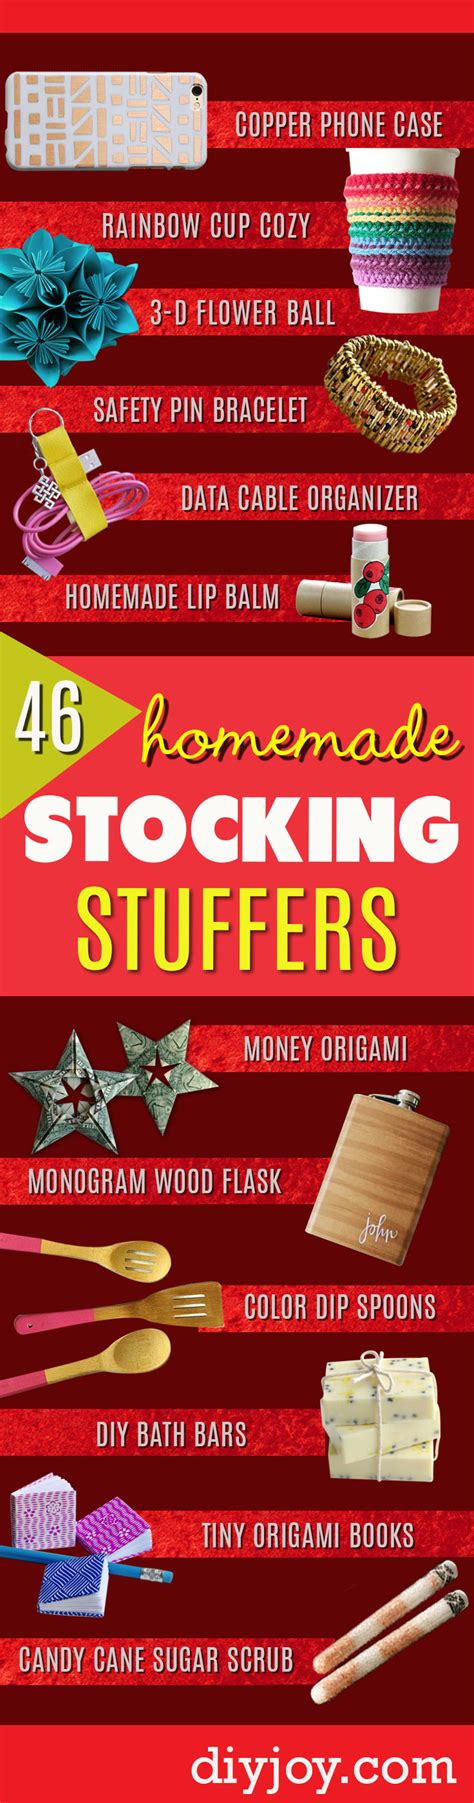 Handmade Stuffers - 46 tiny gifts that make the cutest diy